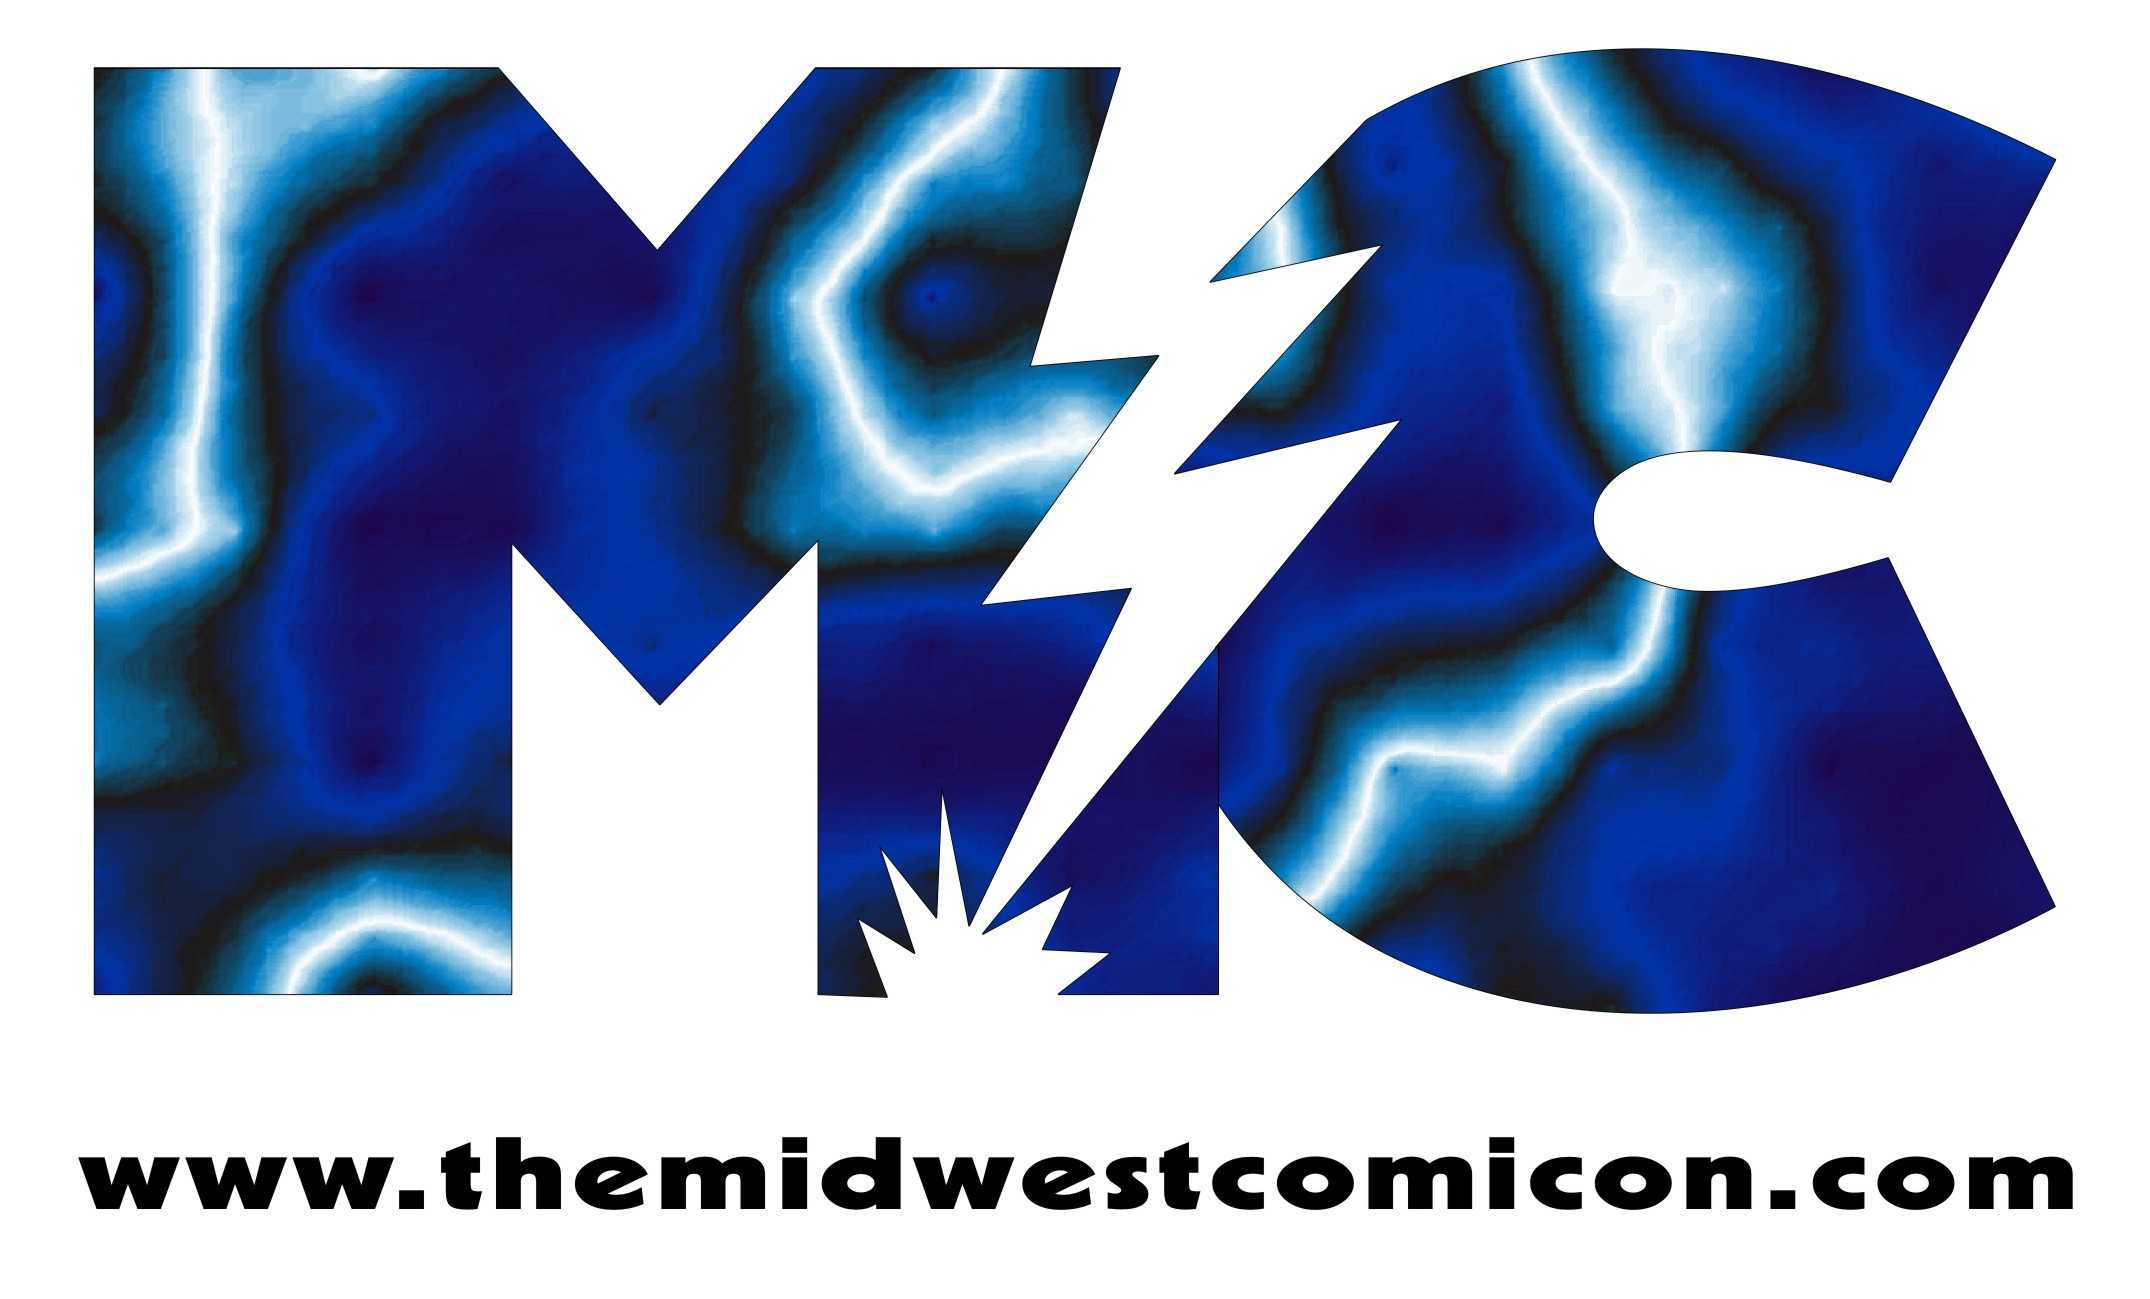 Midwest Comicon